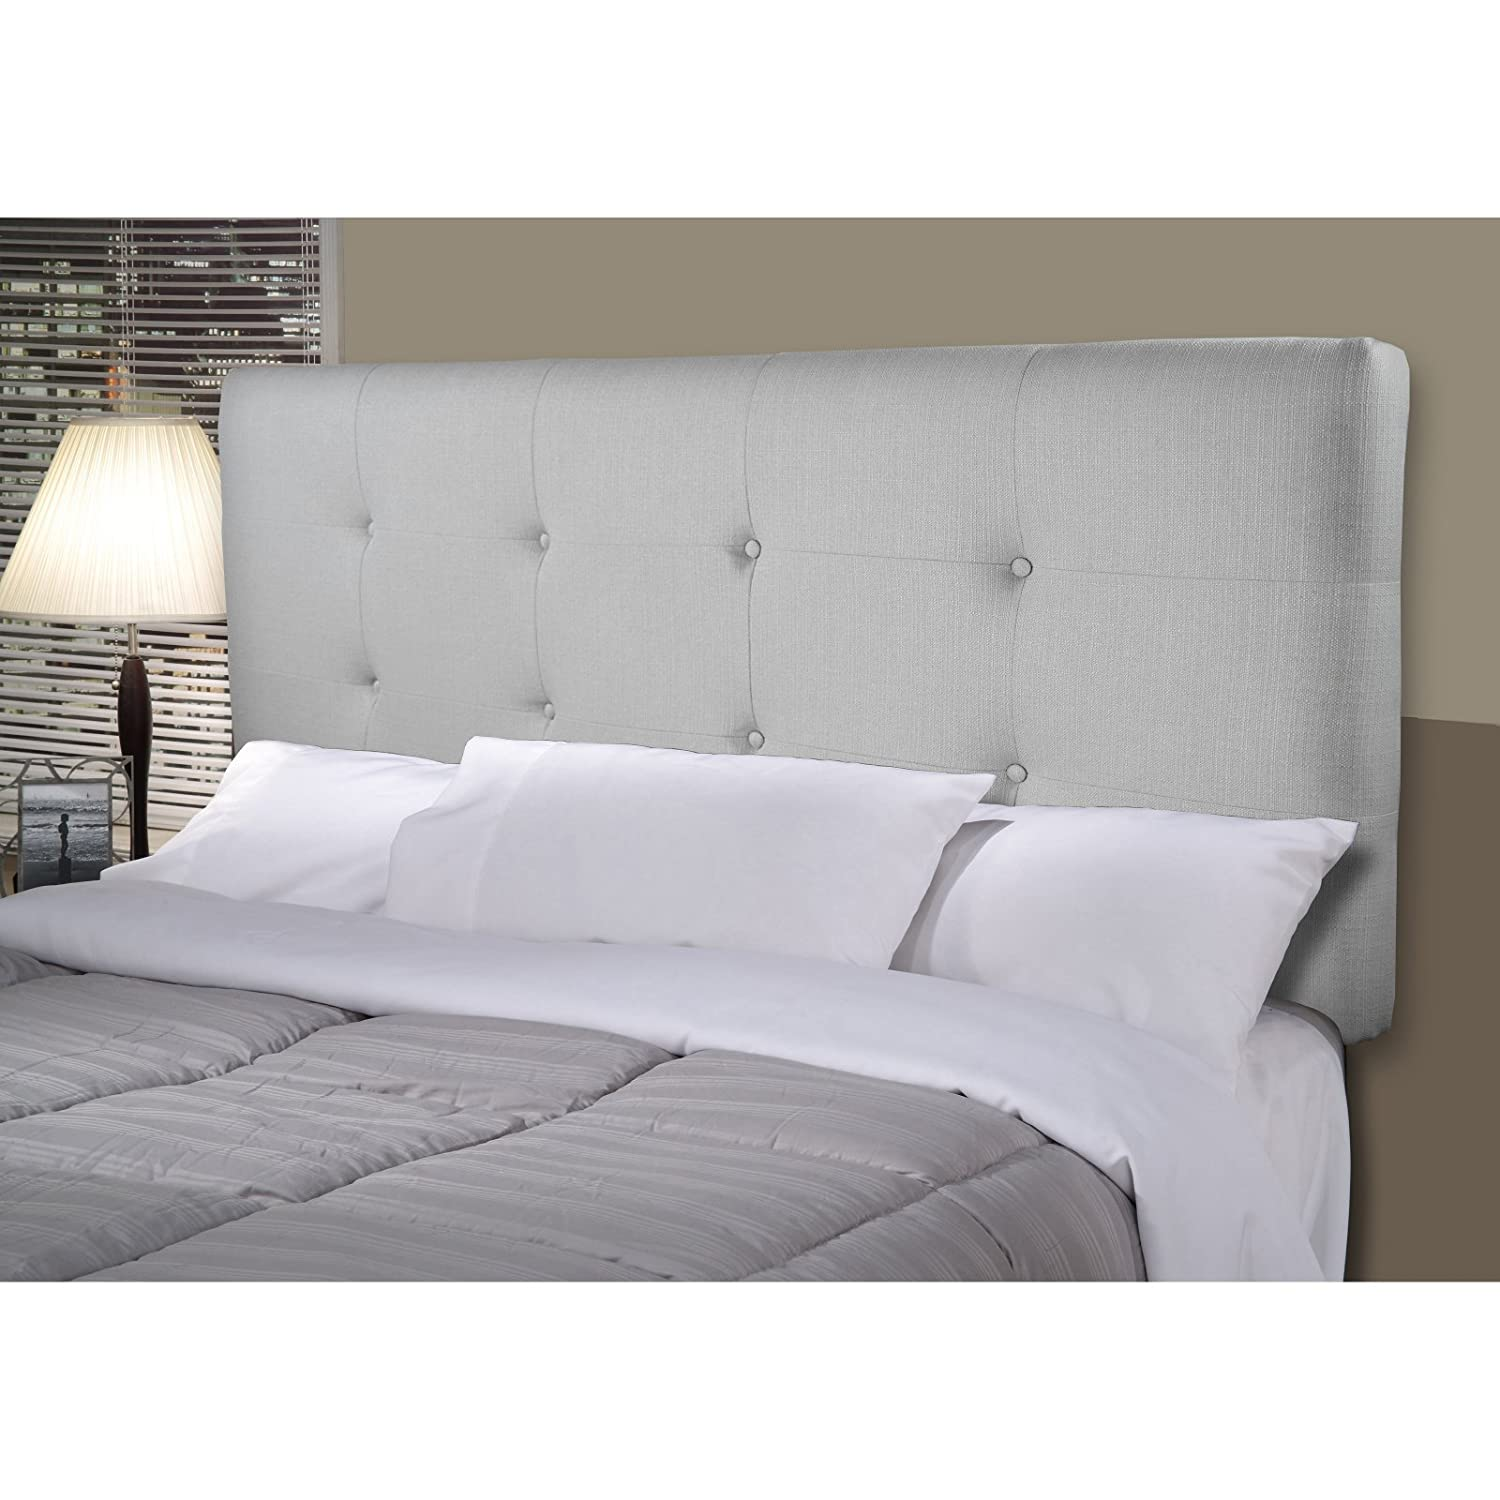 Amazoncom  Mjl Furniture Designs Ali Padded Bedroom Headboard Contemporary